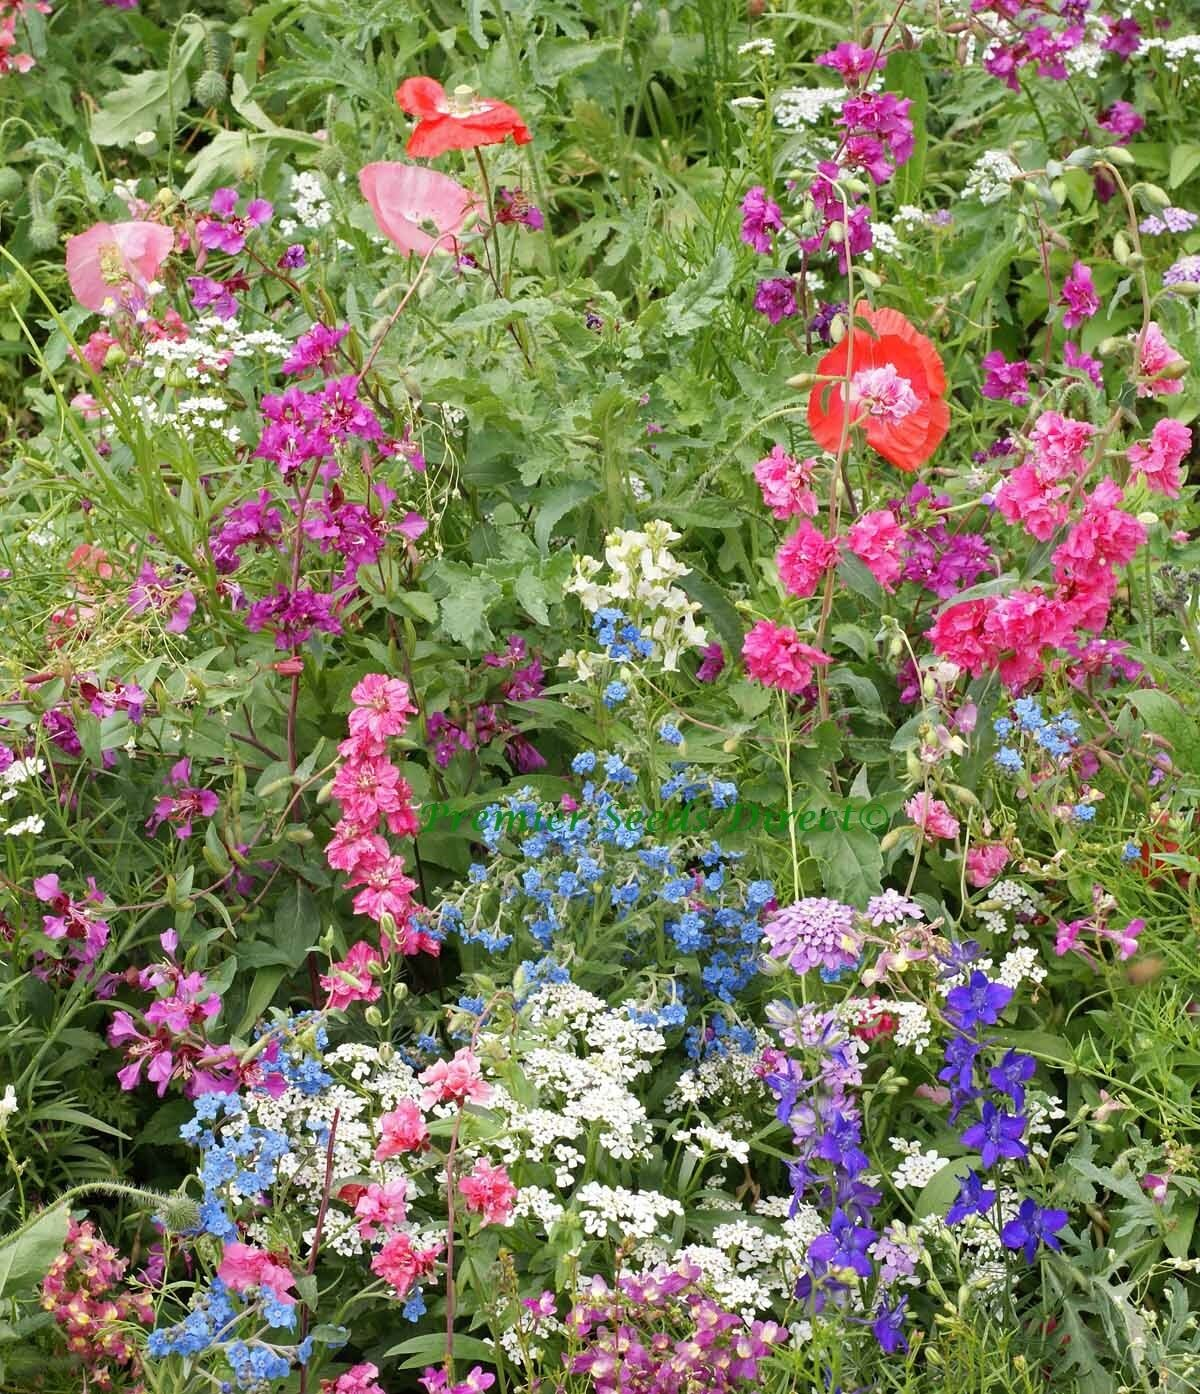 Flower mix shade native and new world annuals 25gm 18 sq meters ebay flower mix shade native and new world annuals 25gm 18 sq meters izmirmasajfo